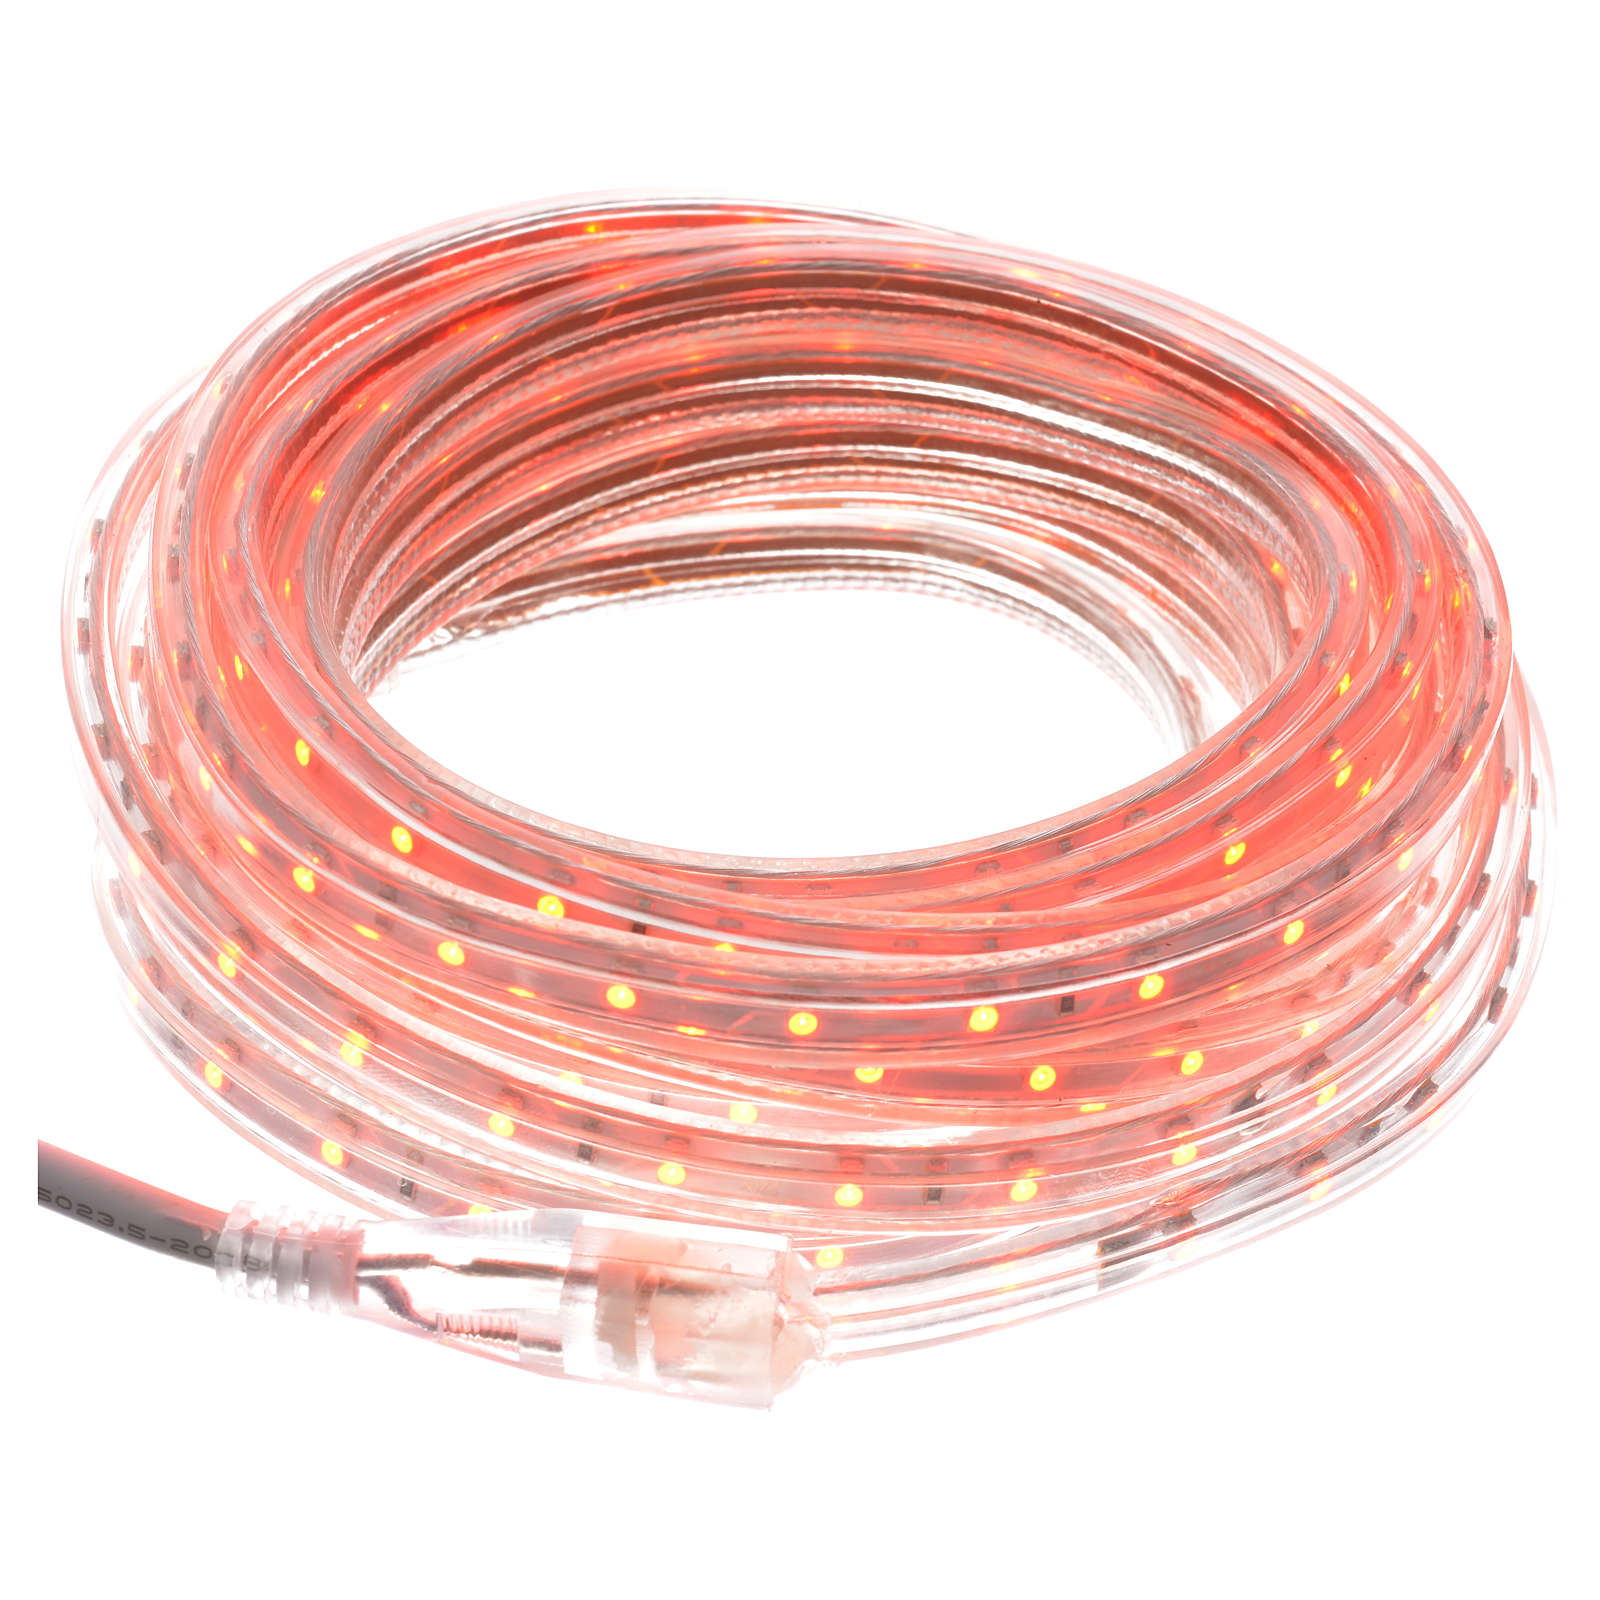 Fairy lights slim strip with 300 red LED for indoor use 3